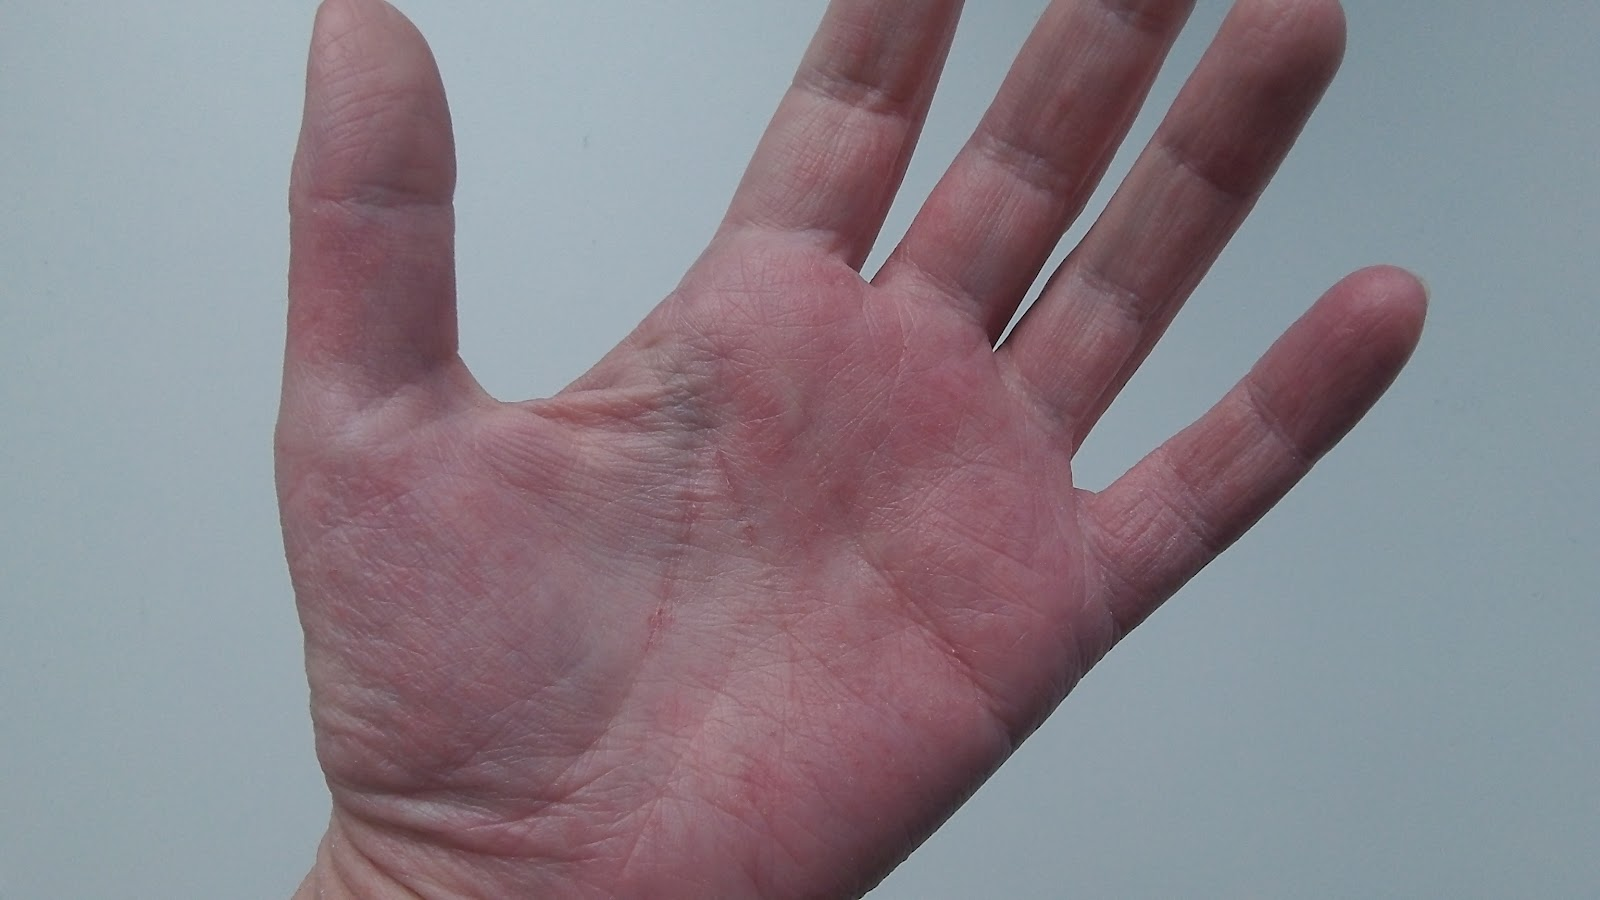 Tiny Red Dots On Palms - Dermatology - MedHelp